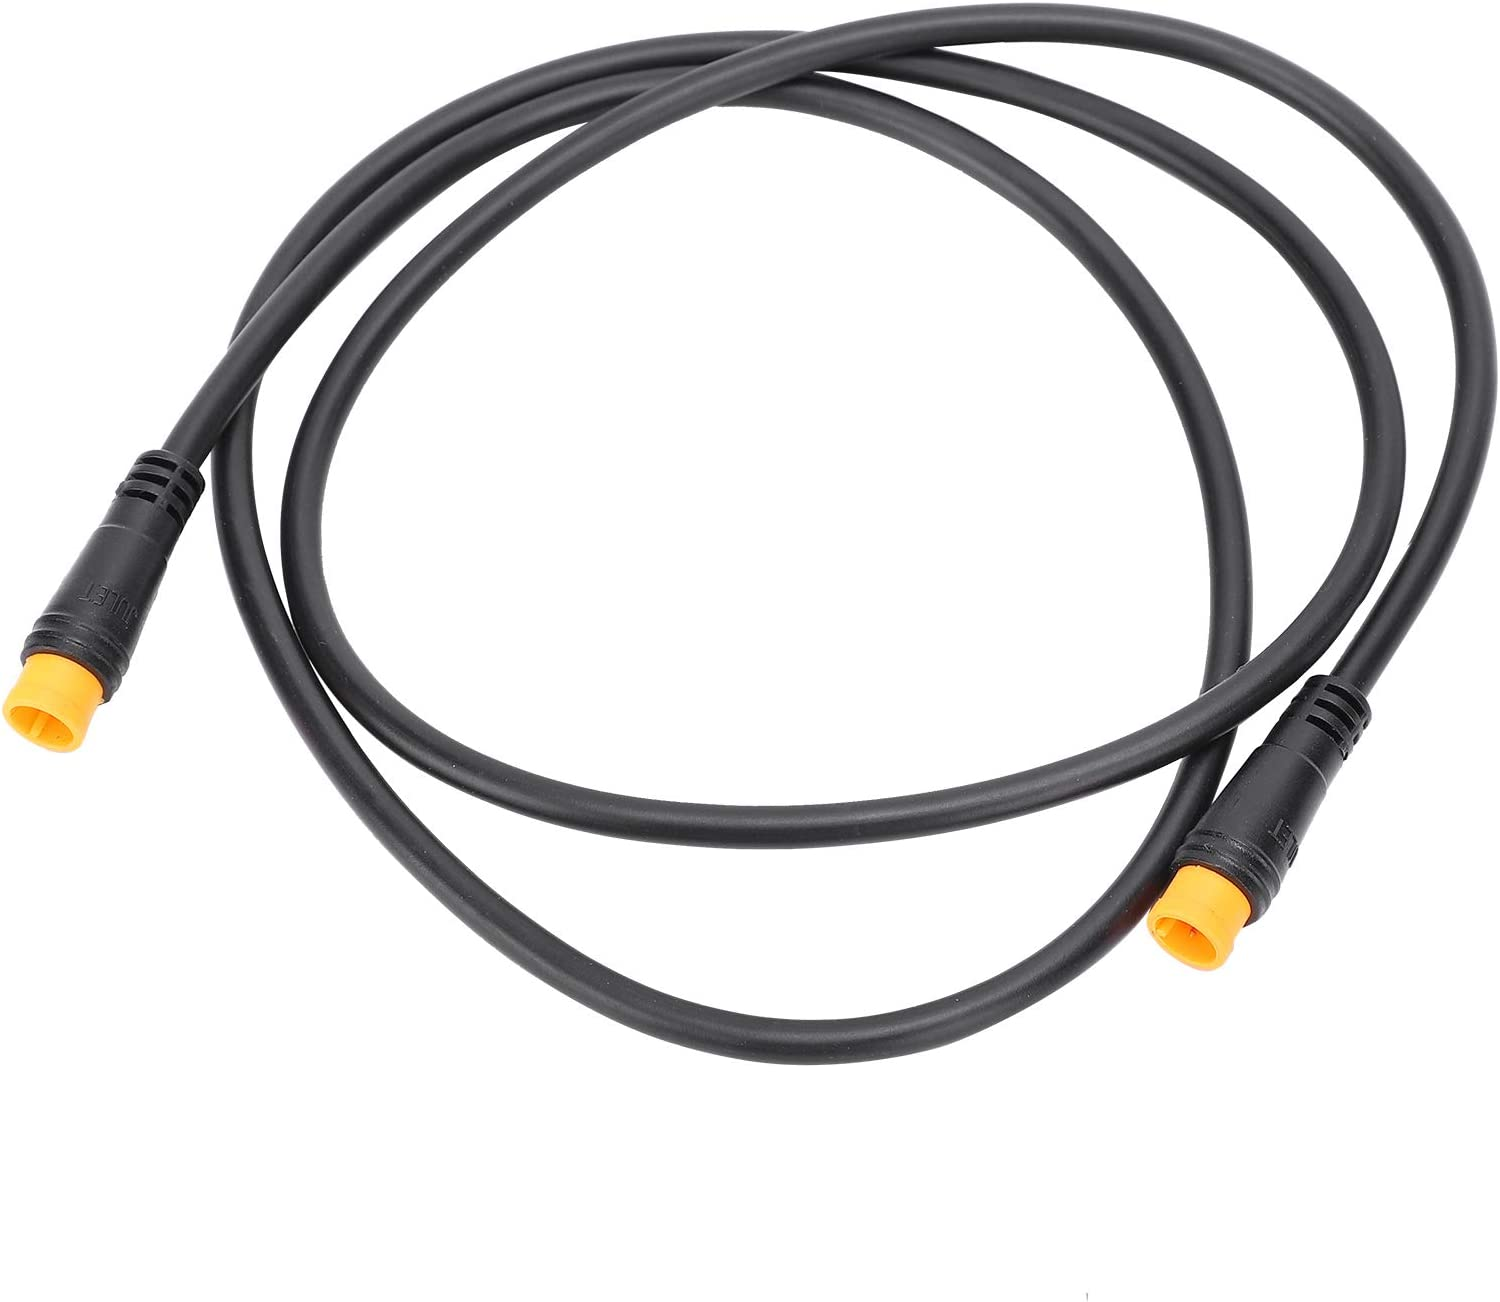 SALUTUYA Bicycle Adapter Cable Long Ranking TOP16 Length 34.3in Electric sale